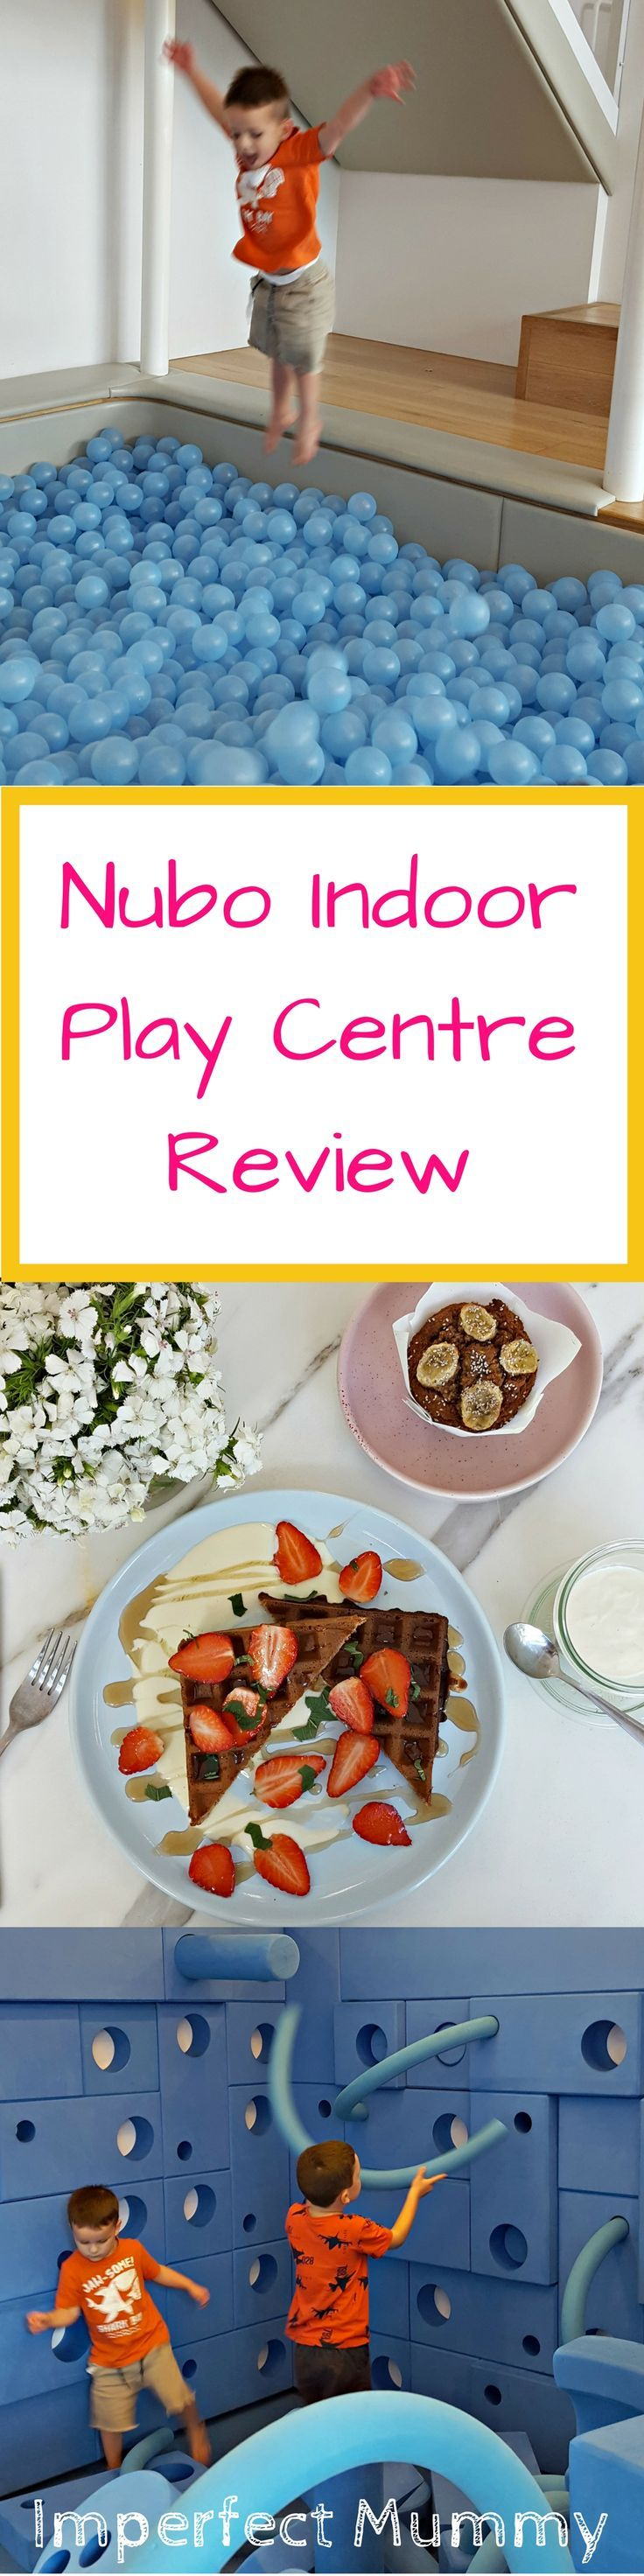 NUBO is a play centre that's thought beyond the needs of a sticky 1 year old. It's an area that is calm, clean, relaxed and a pleasure for even grown up's